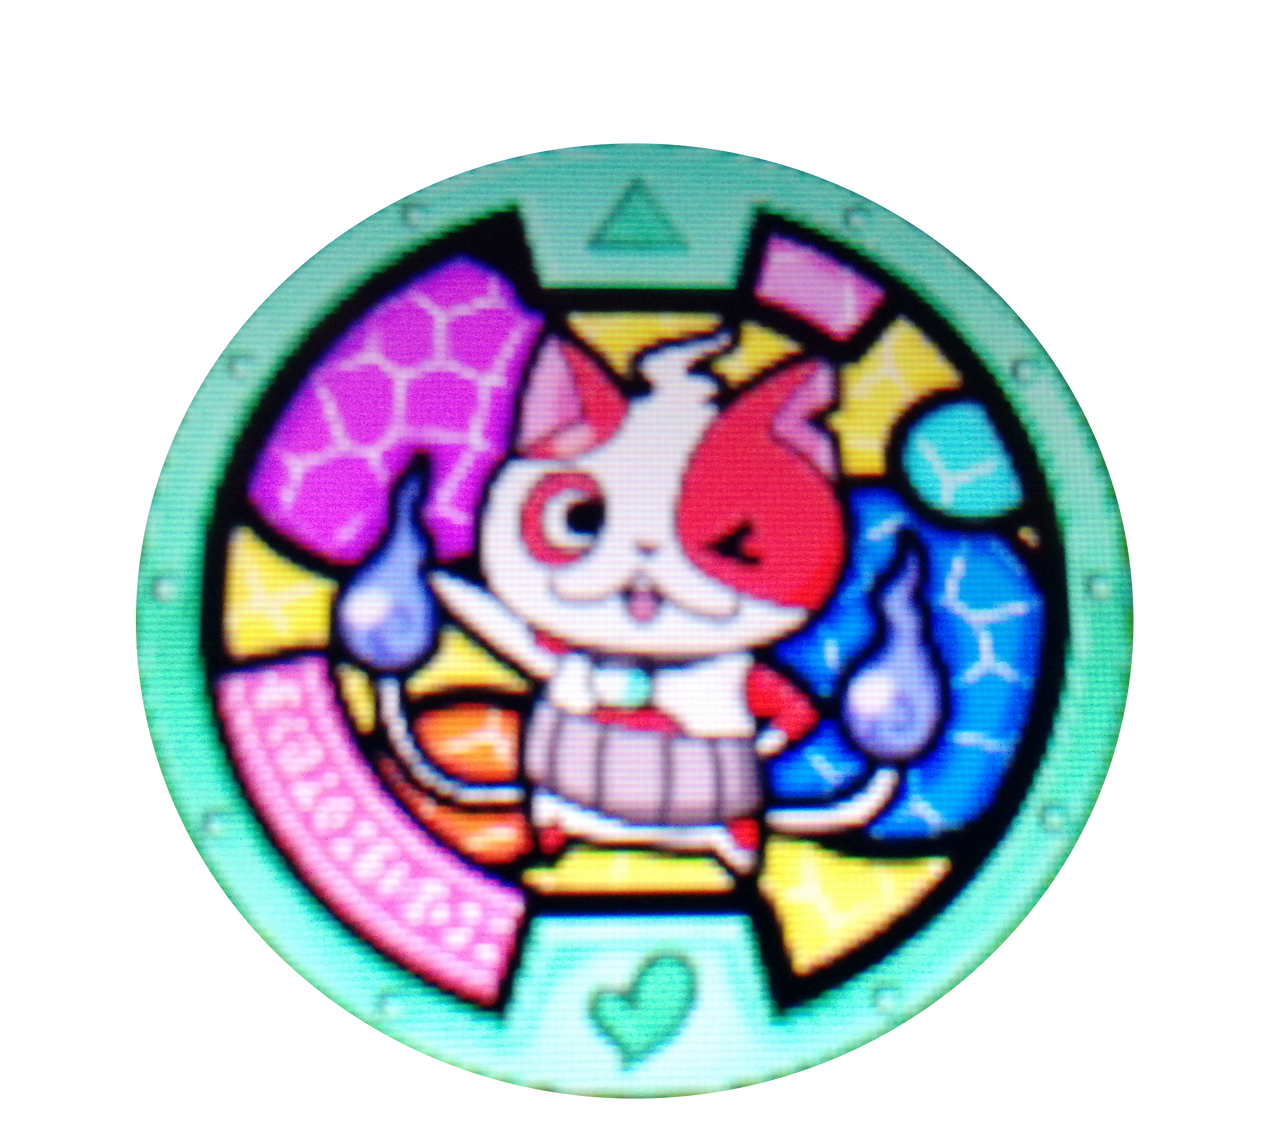 Yo kai watch 2 buchinyan medal by bigmariofan99 on deviantart for Decoration yo kai watch